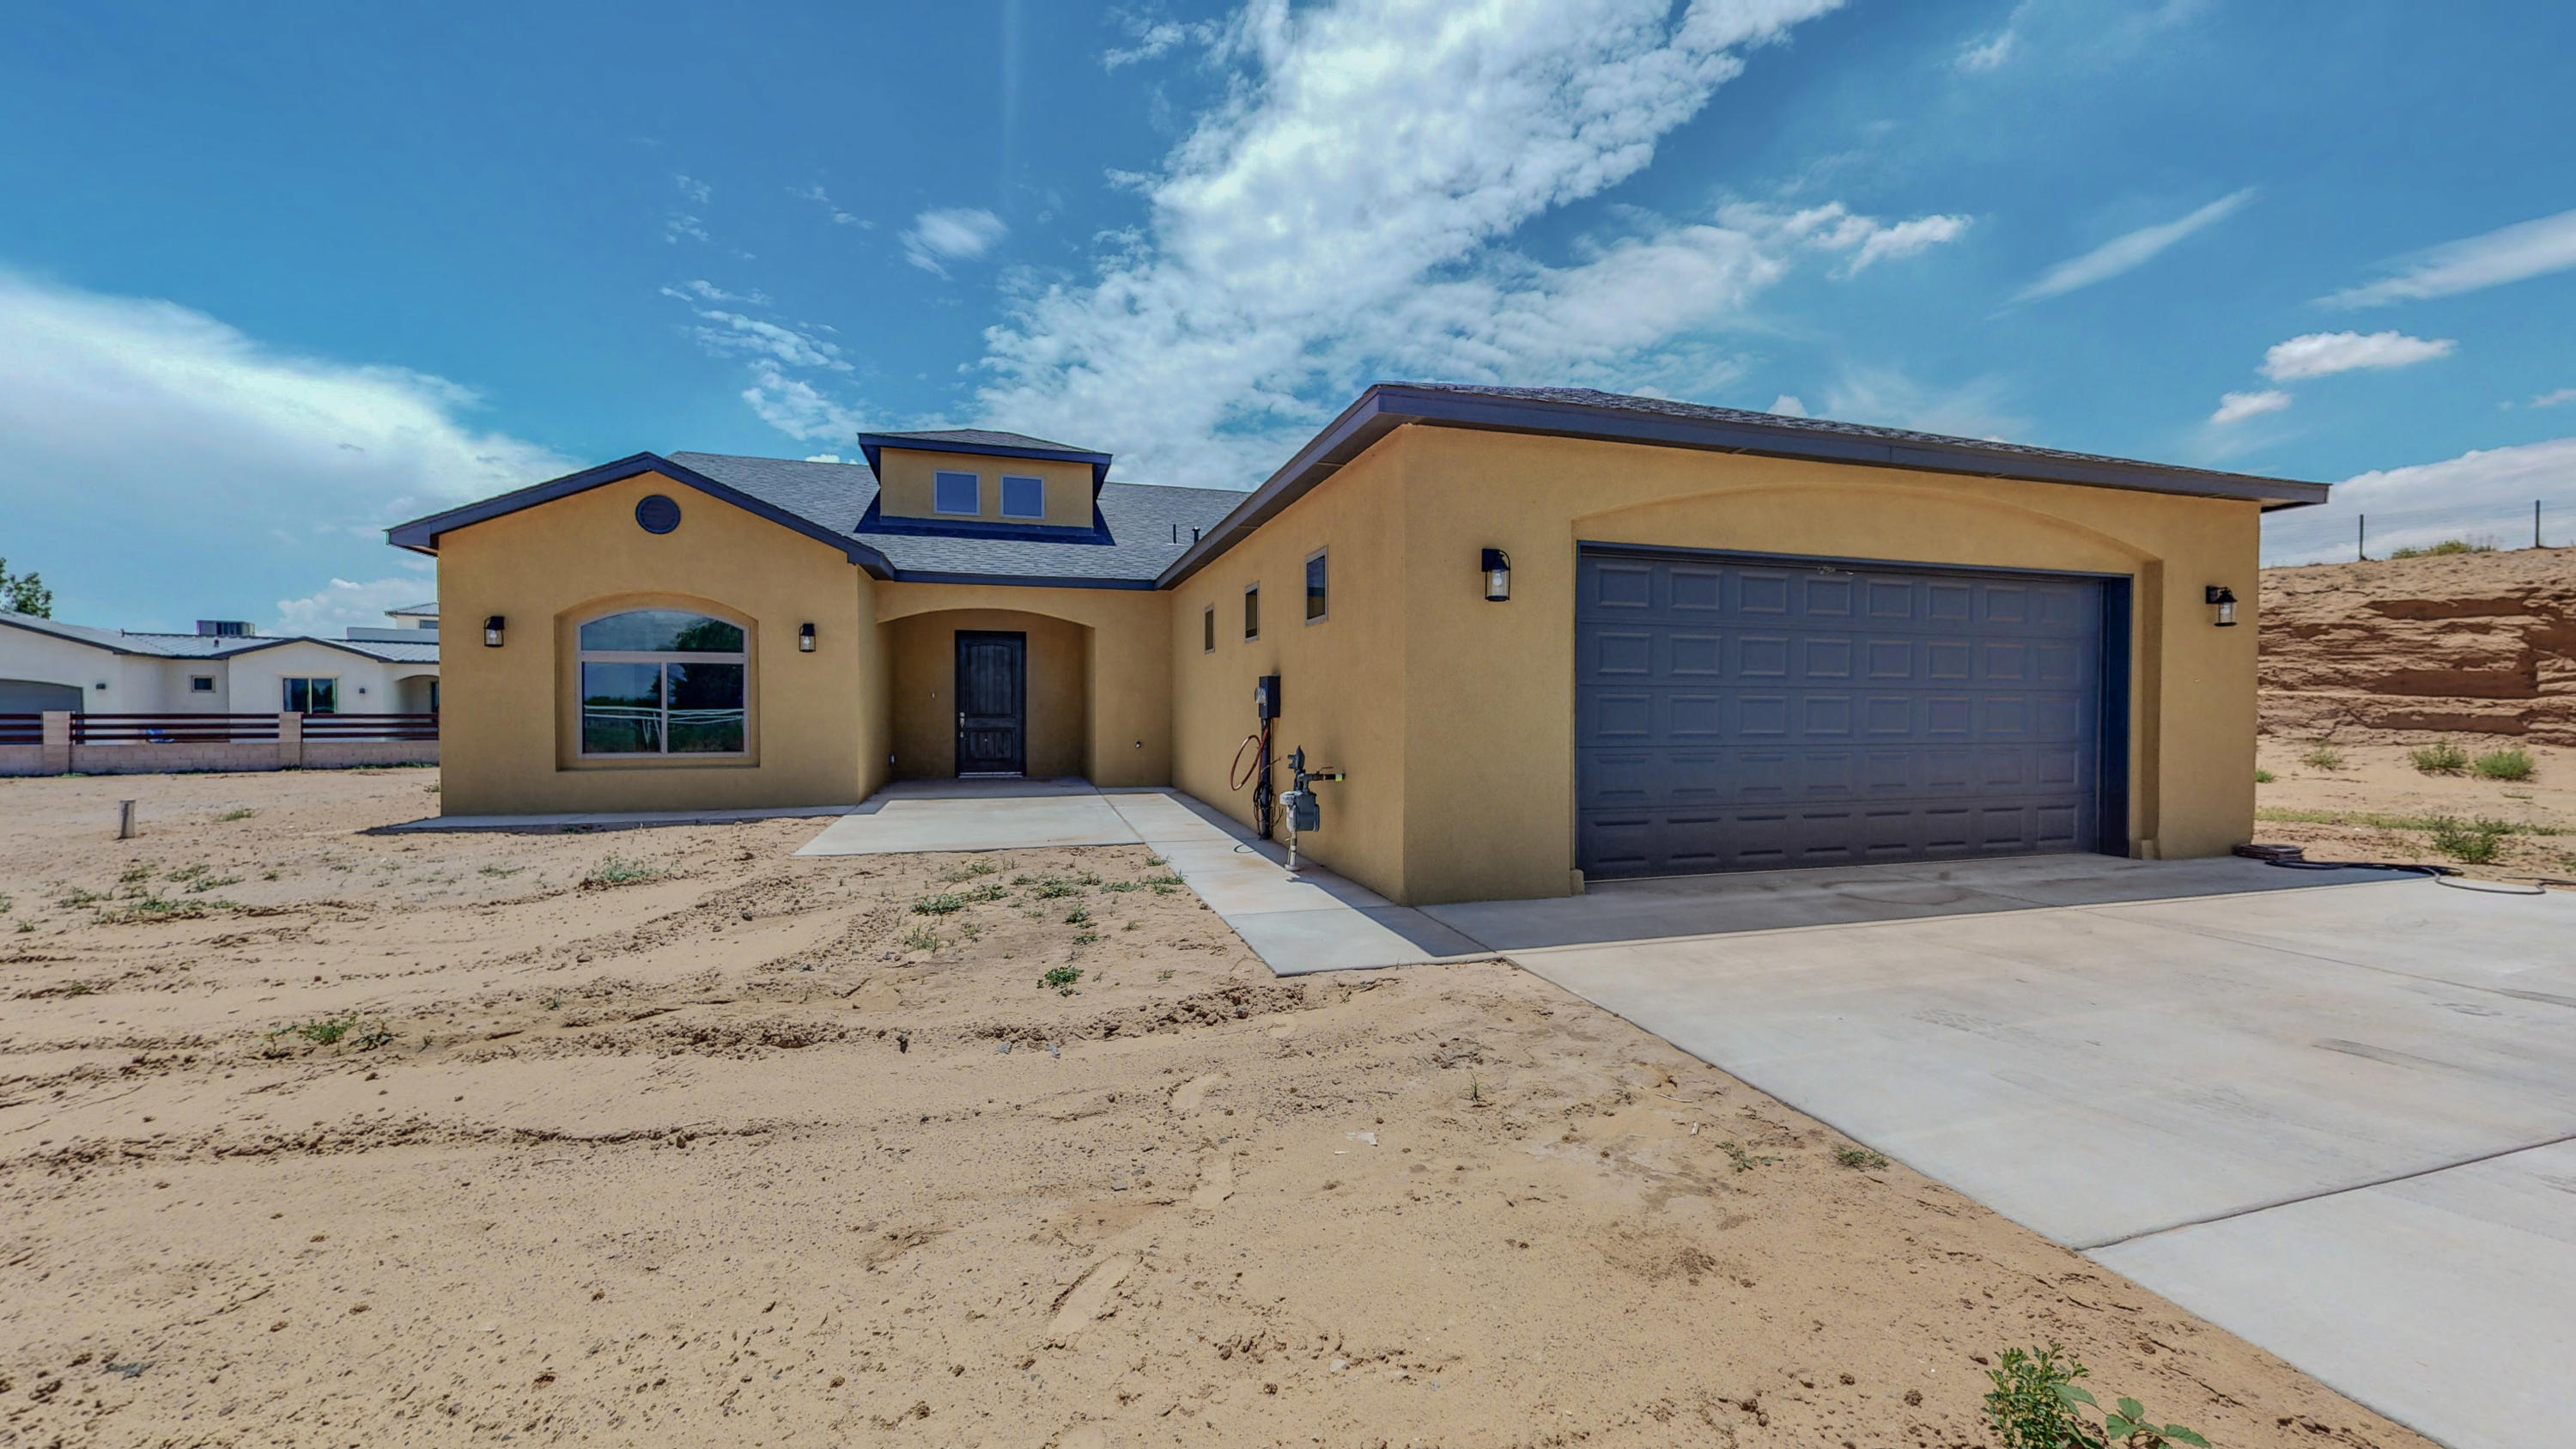 Beautiful Brand New Home with an split, open floor plan on a 1 acre lot! Home has 10 ft high ceilings throughout, big windows, the custom fireplace in living room opens to the spacious kitchen and big island with sink, walk in pantry, lots of wood cabinets and counter space, Big laundry room with sink and cabinets. Master offers custom walk-in closet, huge walk-in tile shower plus his and hers vanities. Bedroom 2 and 3 have a walk-in closet and share a jack-n-jill bathroom. 4th bedroom could be great for an office or guess room. Other amenities include oversized car garage with windows for natural light, a big porch with lights to enjoy the backyard, private well and septic, with natural gas. Bring the family, horses and animals! Call for your private showing!!